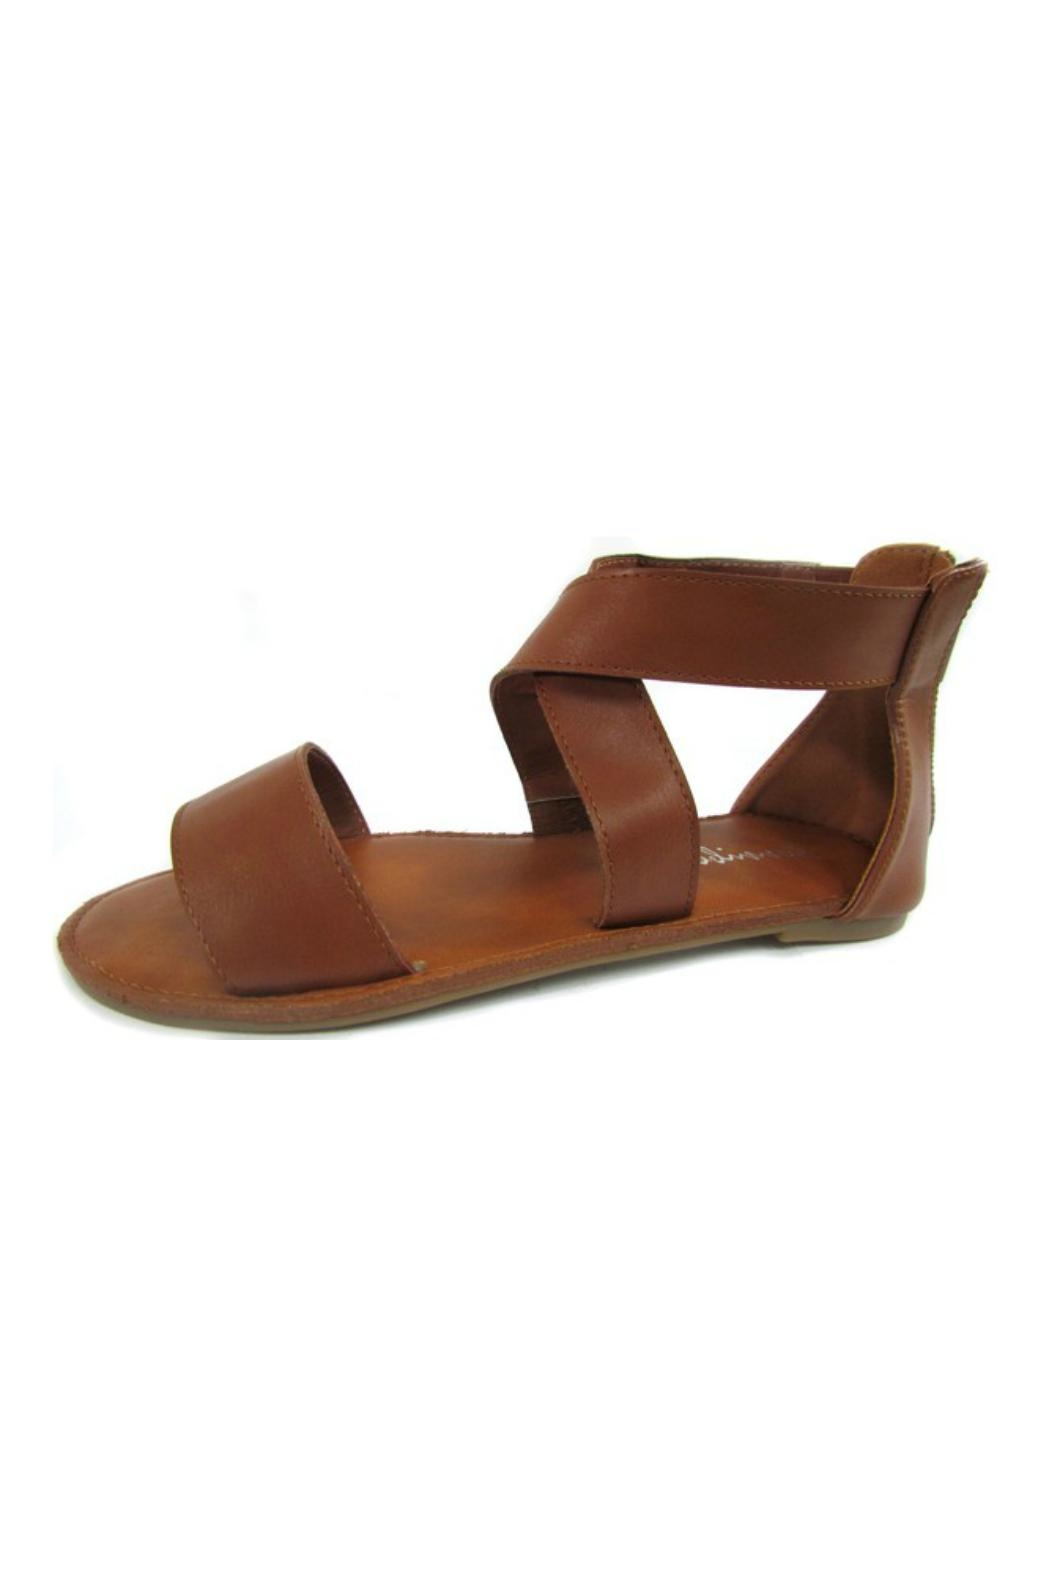 Bowie Accessories Brown Cross Strap Sandal - Front Cropped Image